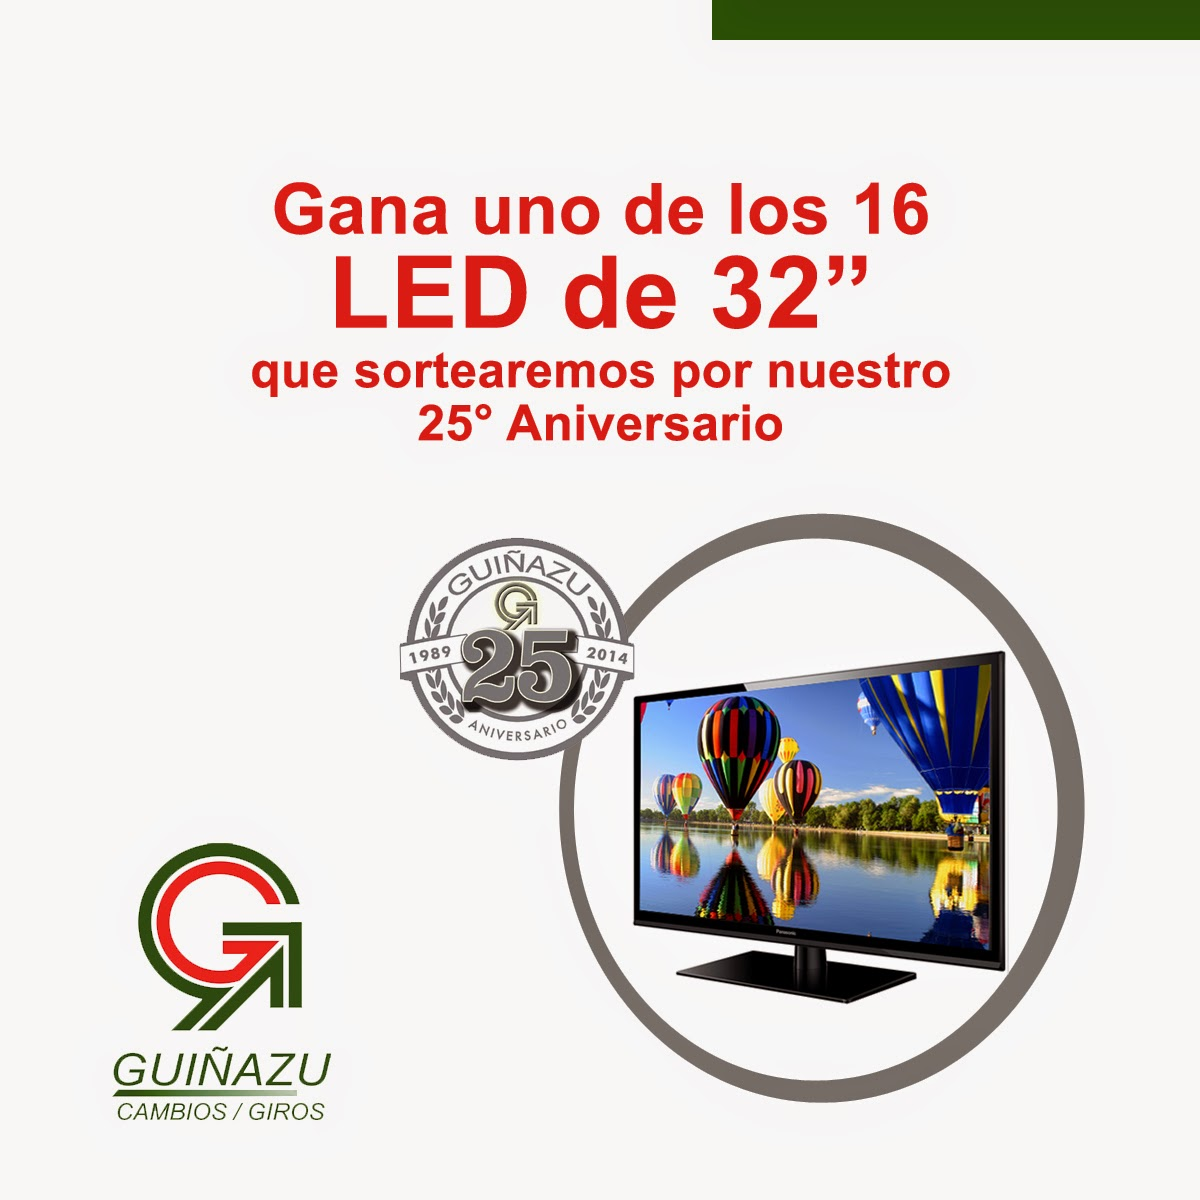 Guiñazu regala TV LED